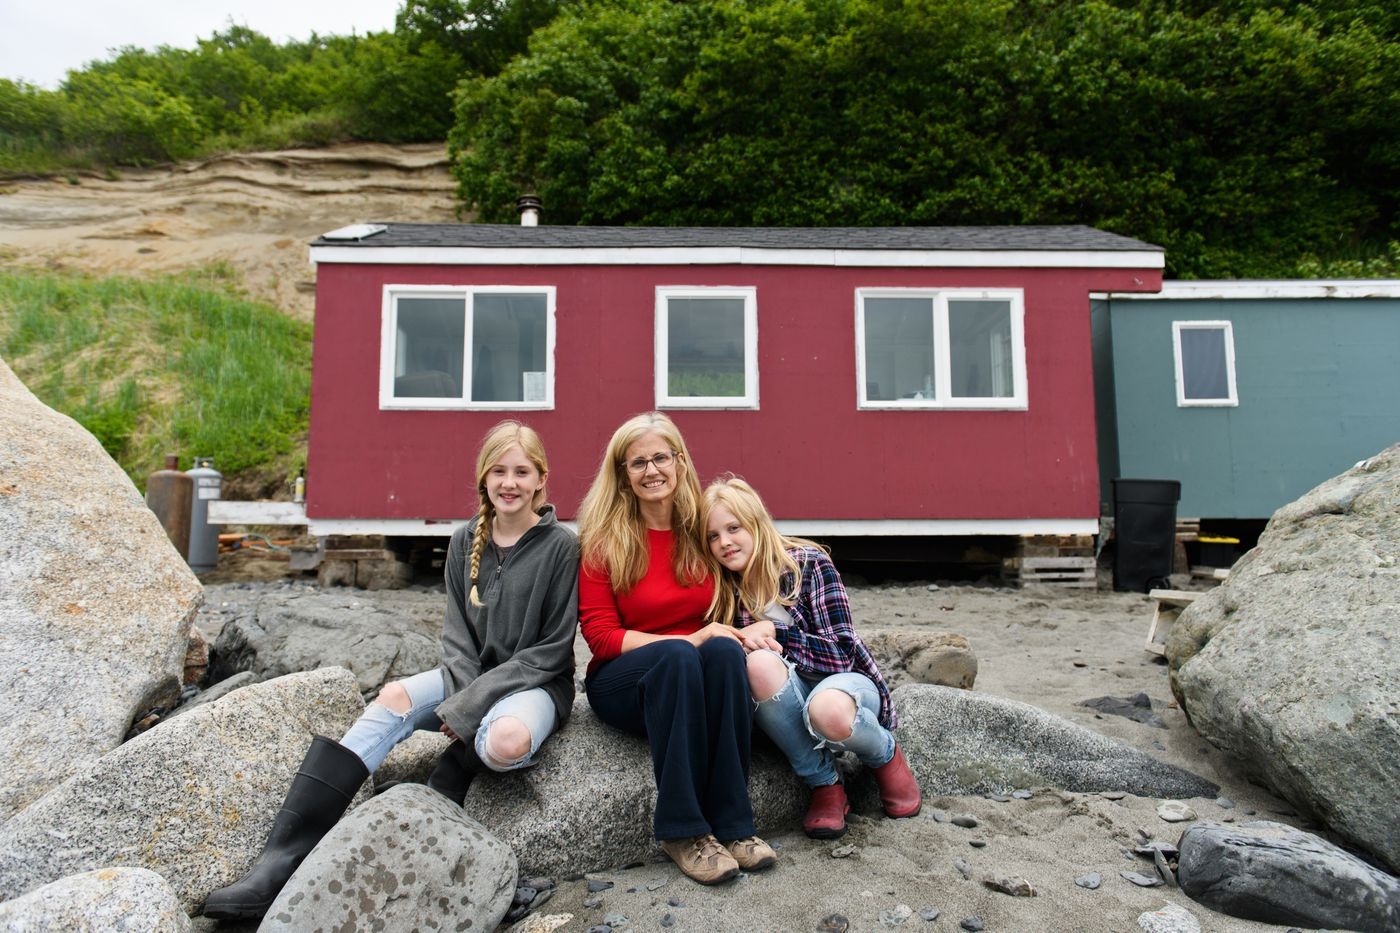 Rita Clucas and her daughters set up their family's setnet fishing camp on the beach at Clam Gulch on June 21, 2018. Thirteen-year-old Samara is at left, and Avielle, 11, is at right. (Marc Lester / ADN)